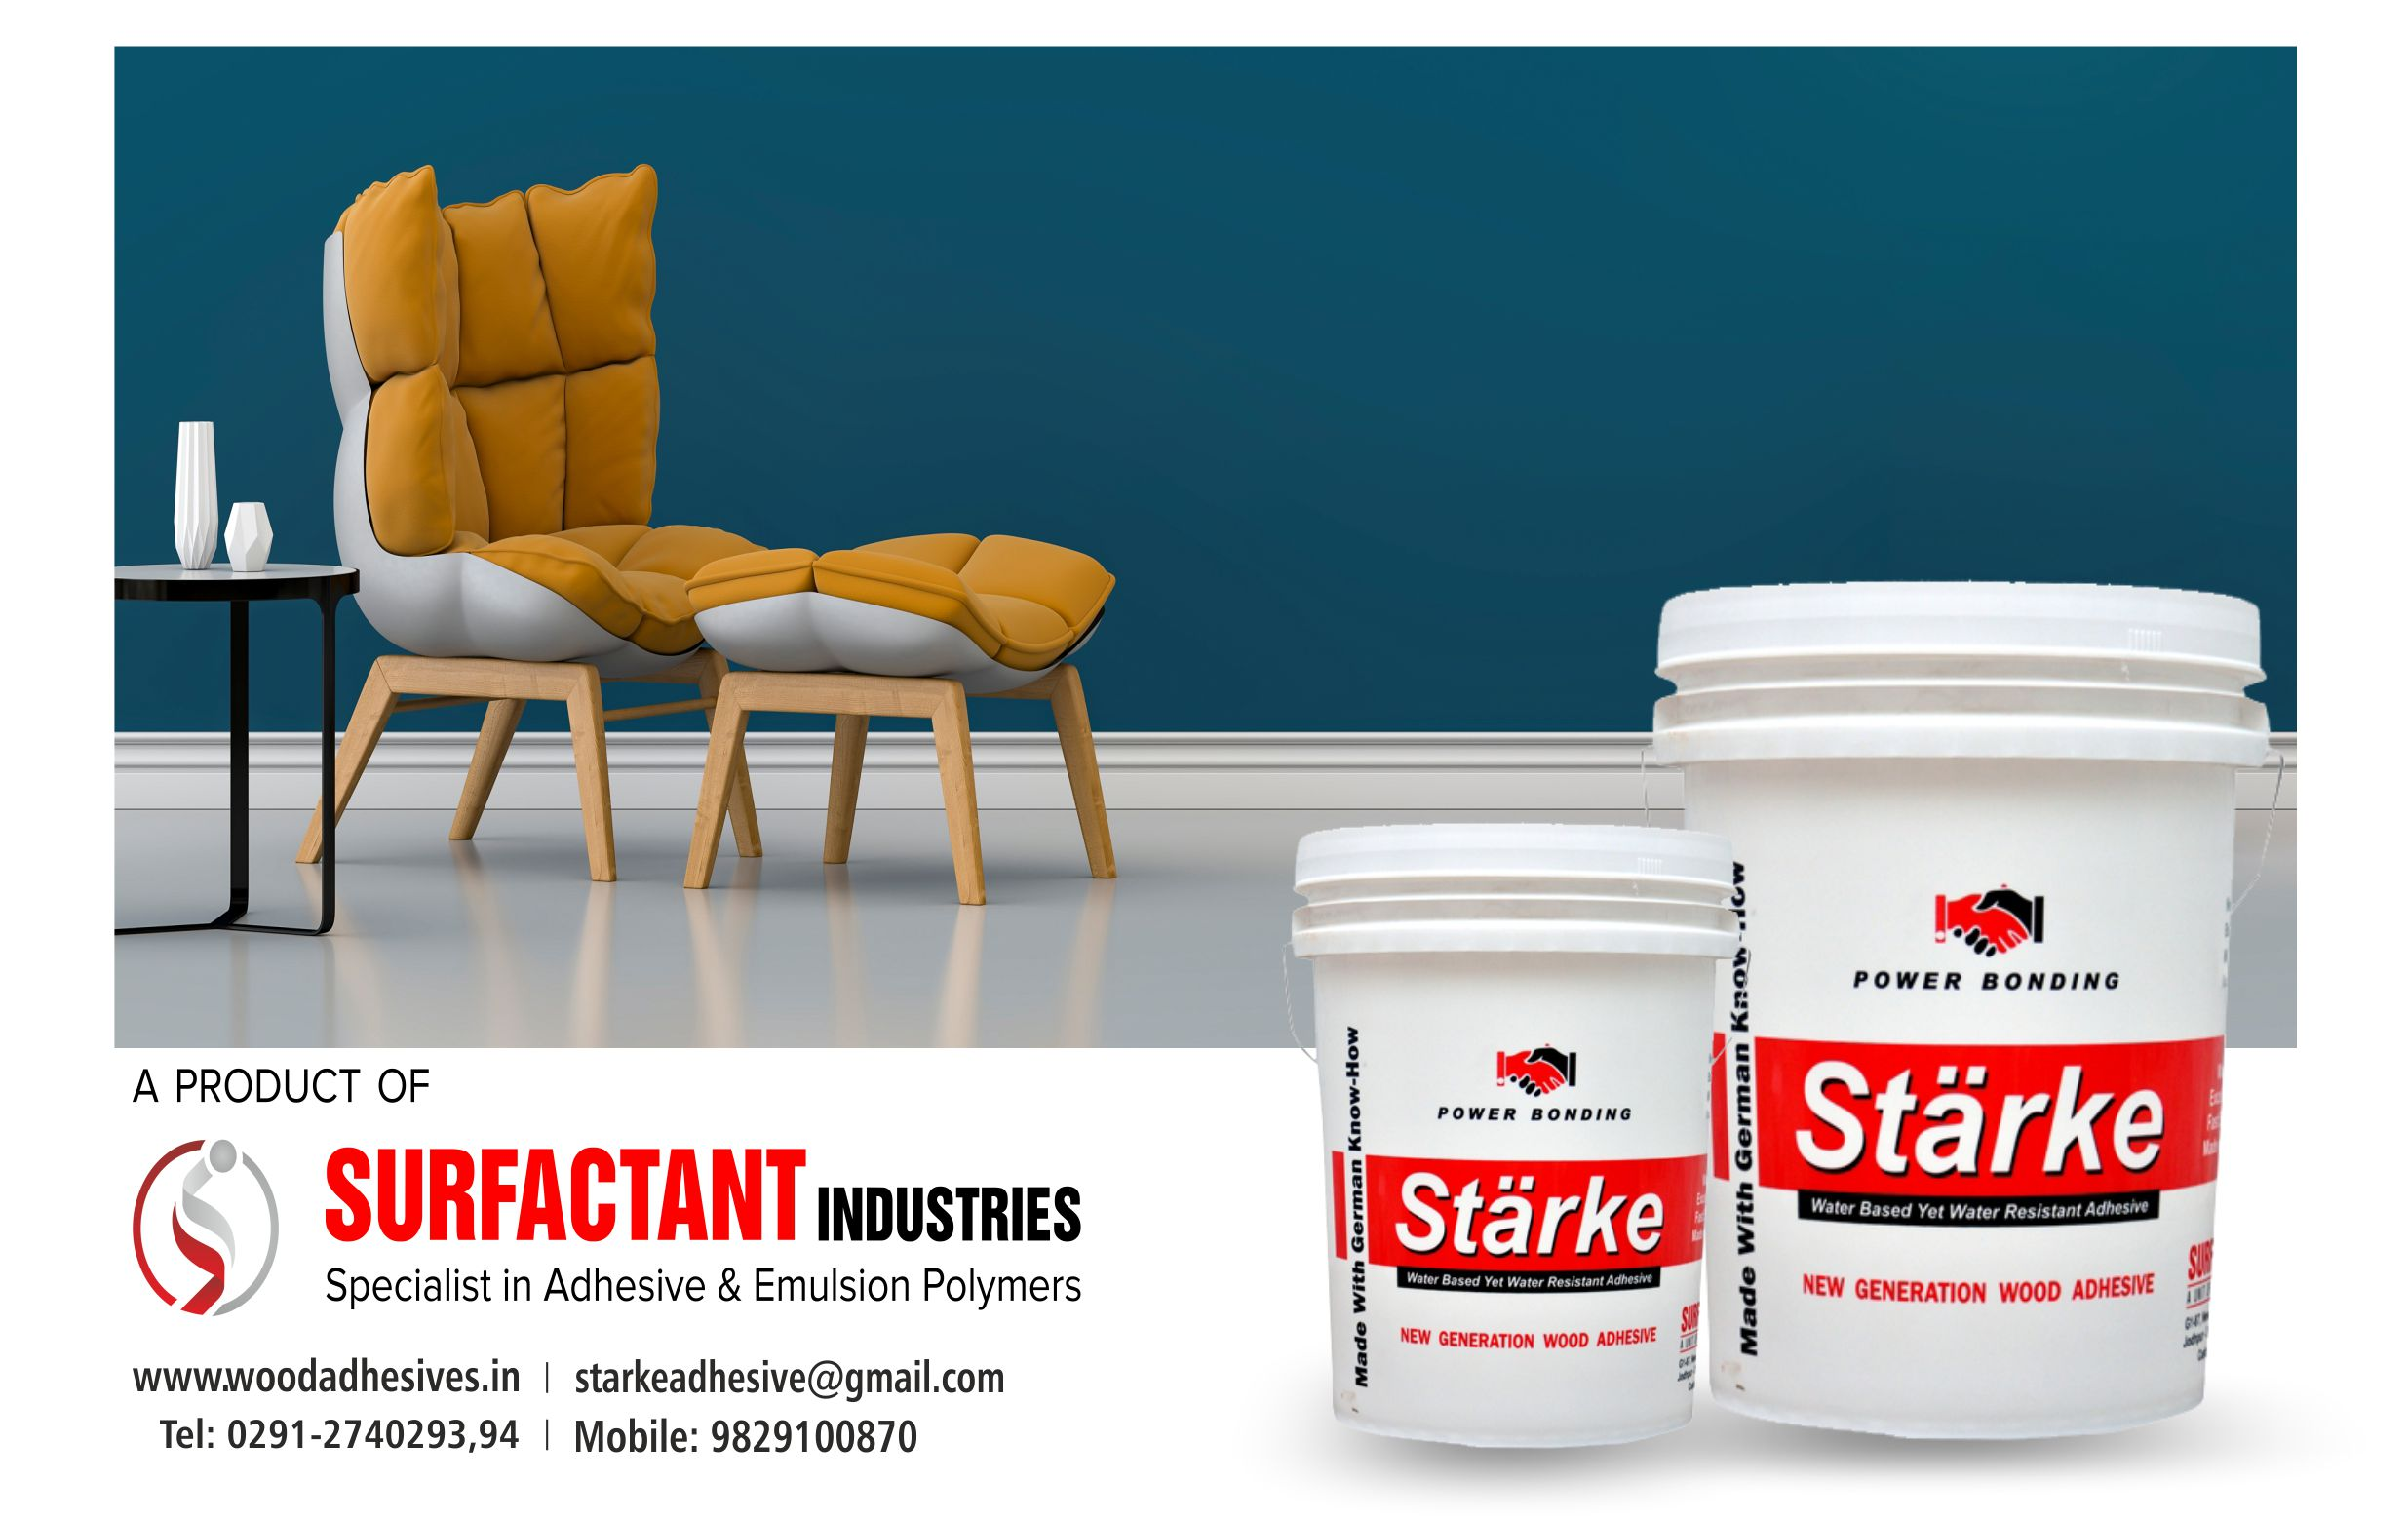 Surfactant Industries half page